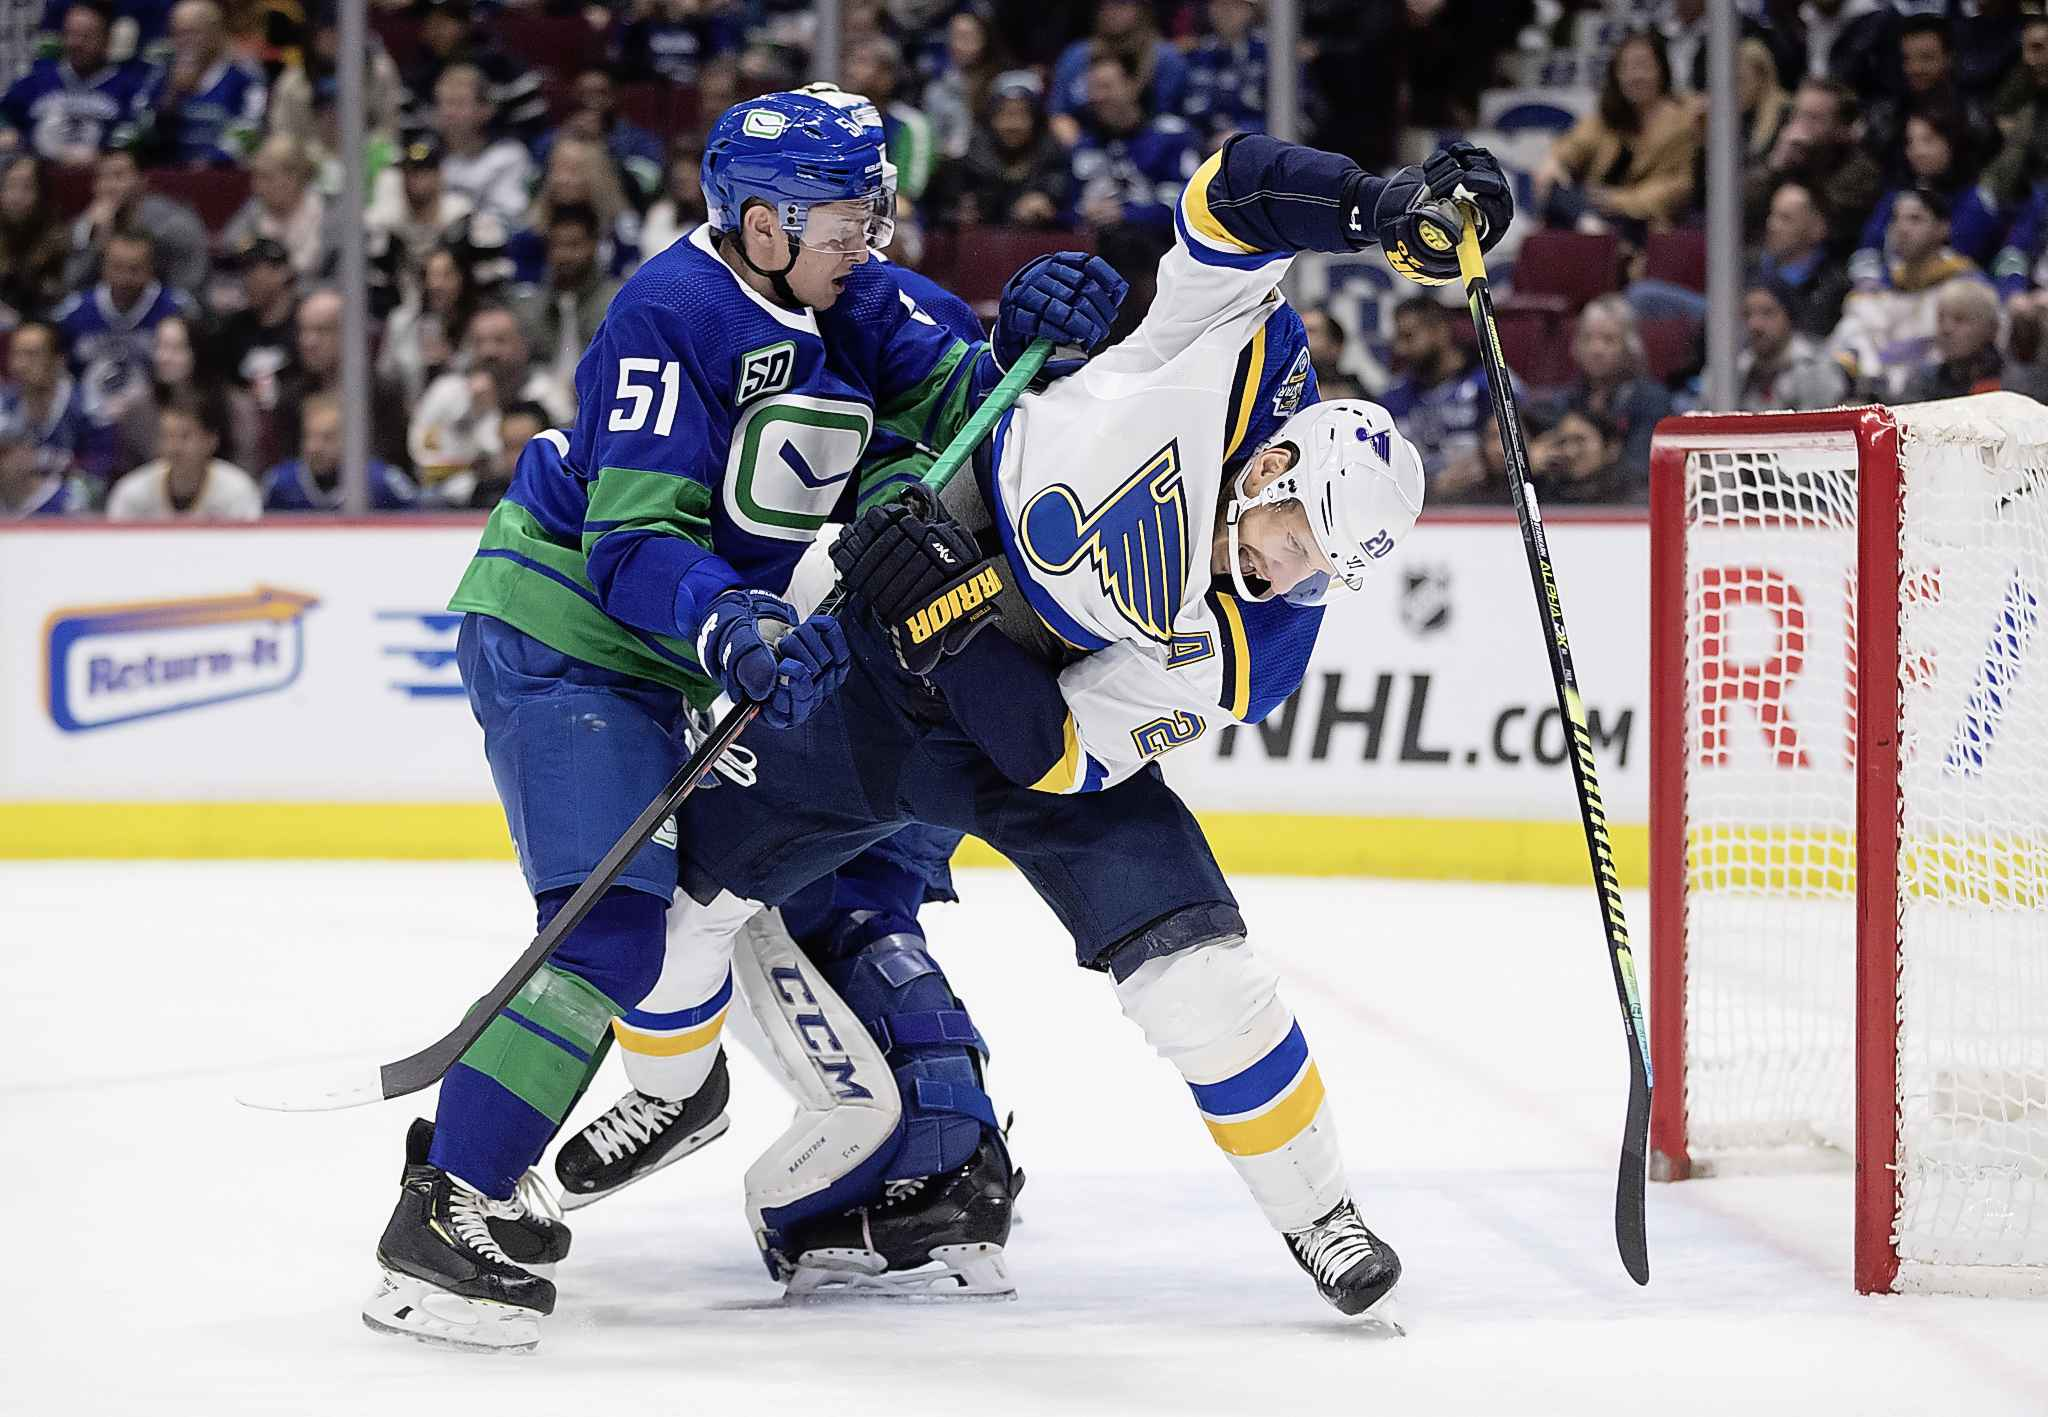 Steen has had 11 seasons with at least 15 goals, scoring a career-high 33 in 2013-14. (Darryl Dyck / The Canadian Press files)